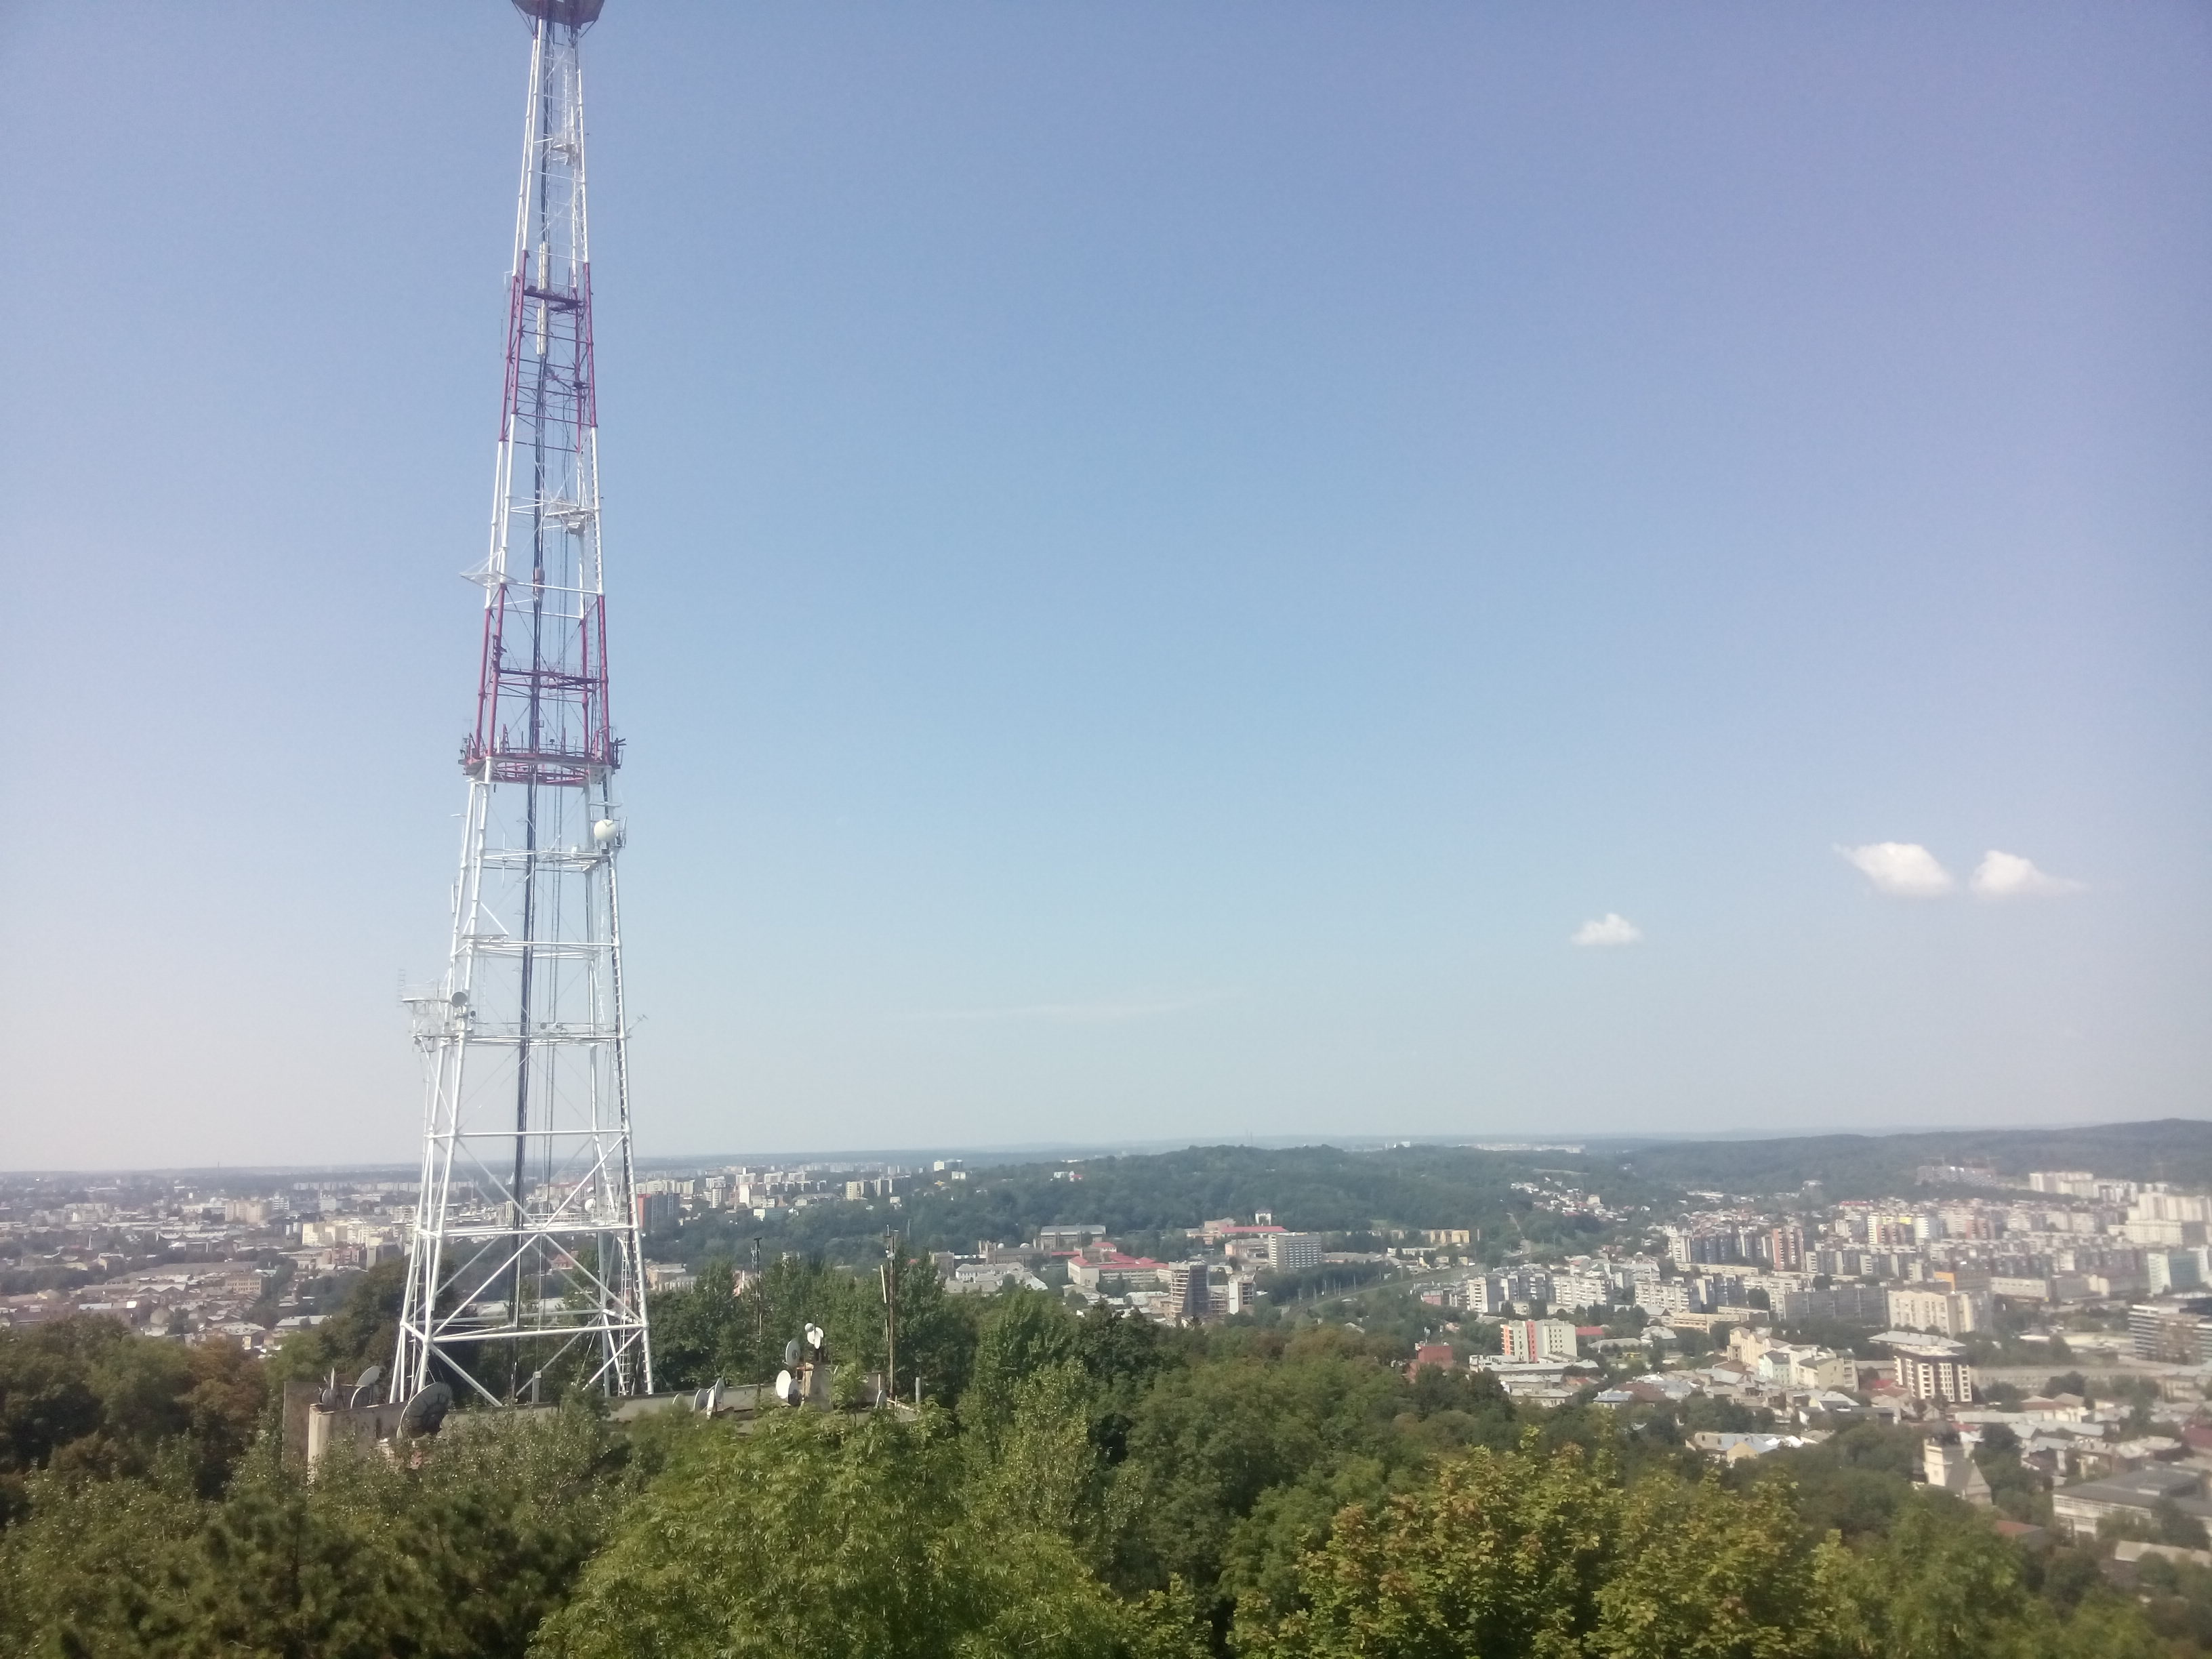 A view over Lviv from high up, with trees and a TV tower